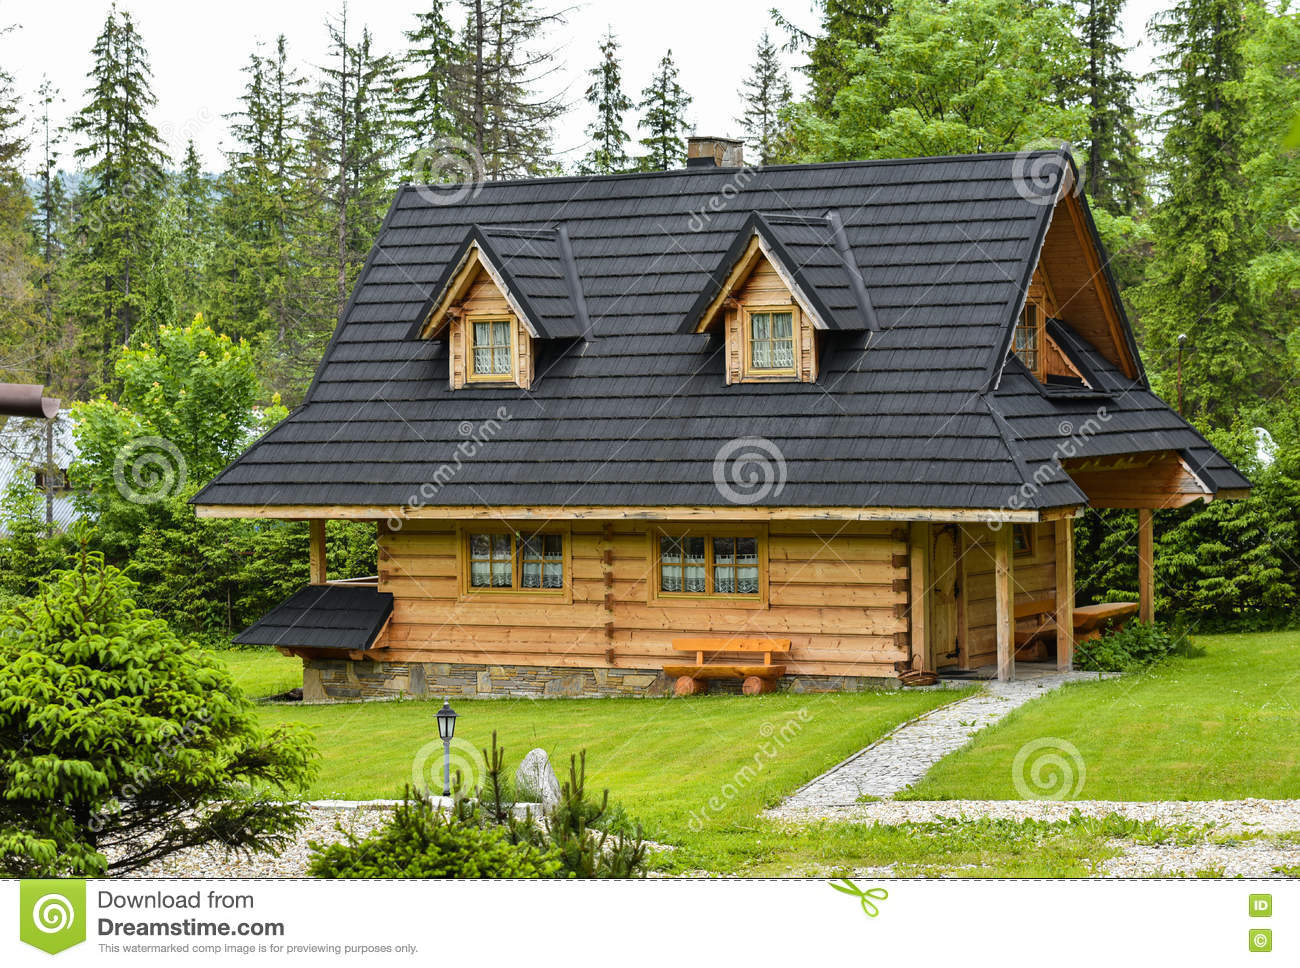 Wooden House In Zakopane Tatra Mountains Stock Photo Image 73807195